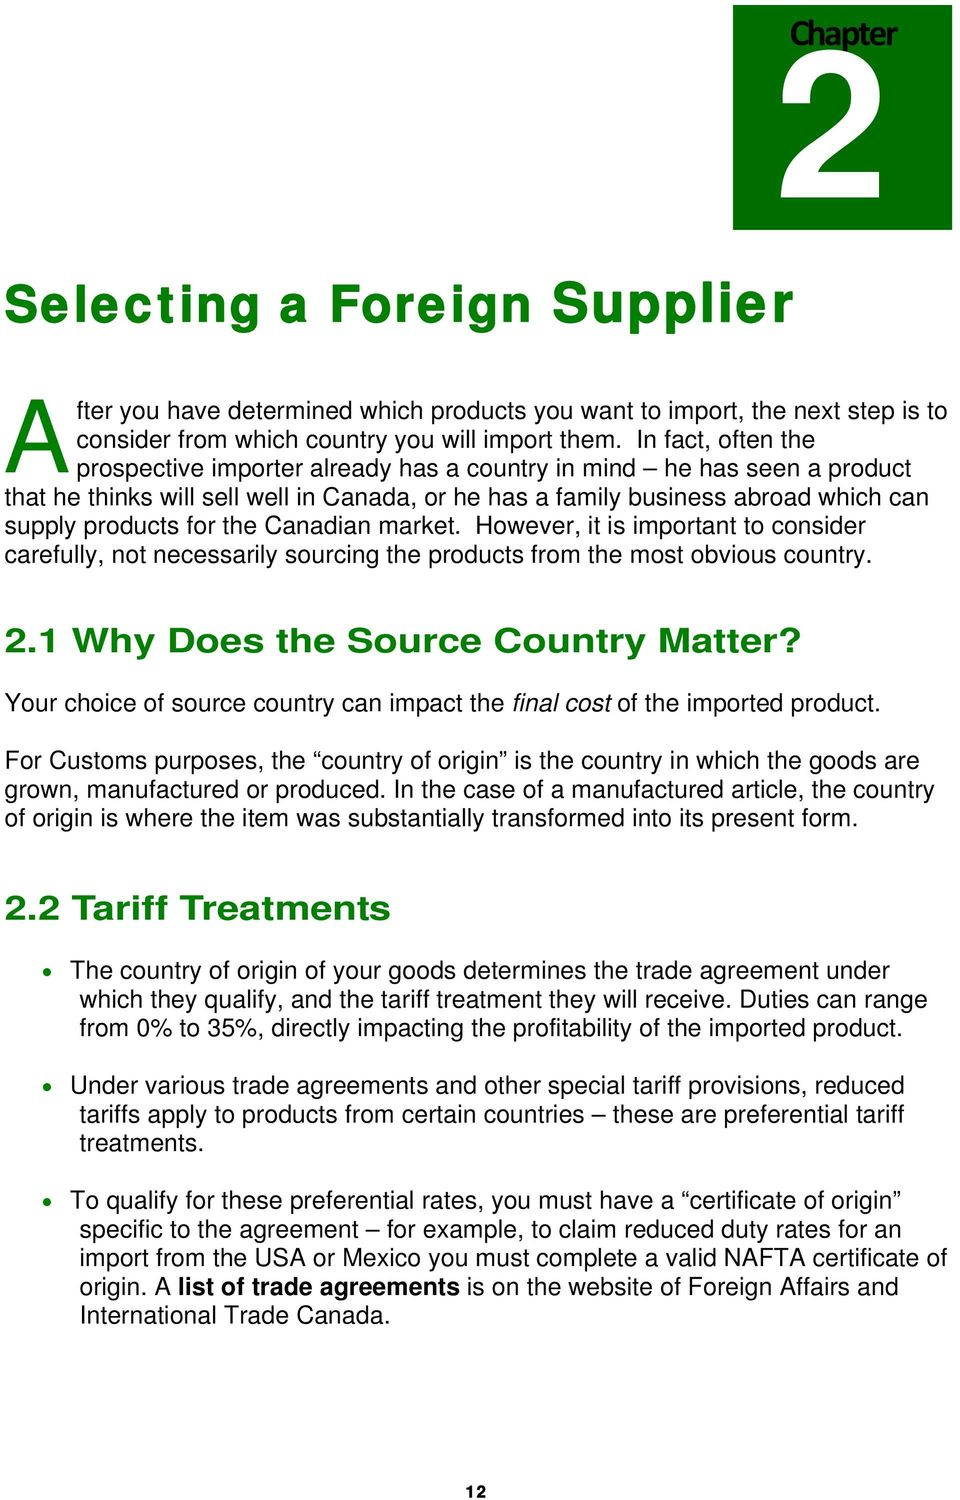 A STEP BY STEP GUIDE TO IMPORTING  A Guide for Canadian